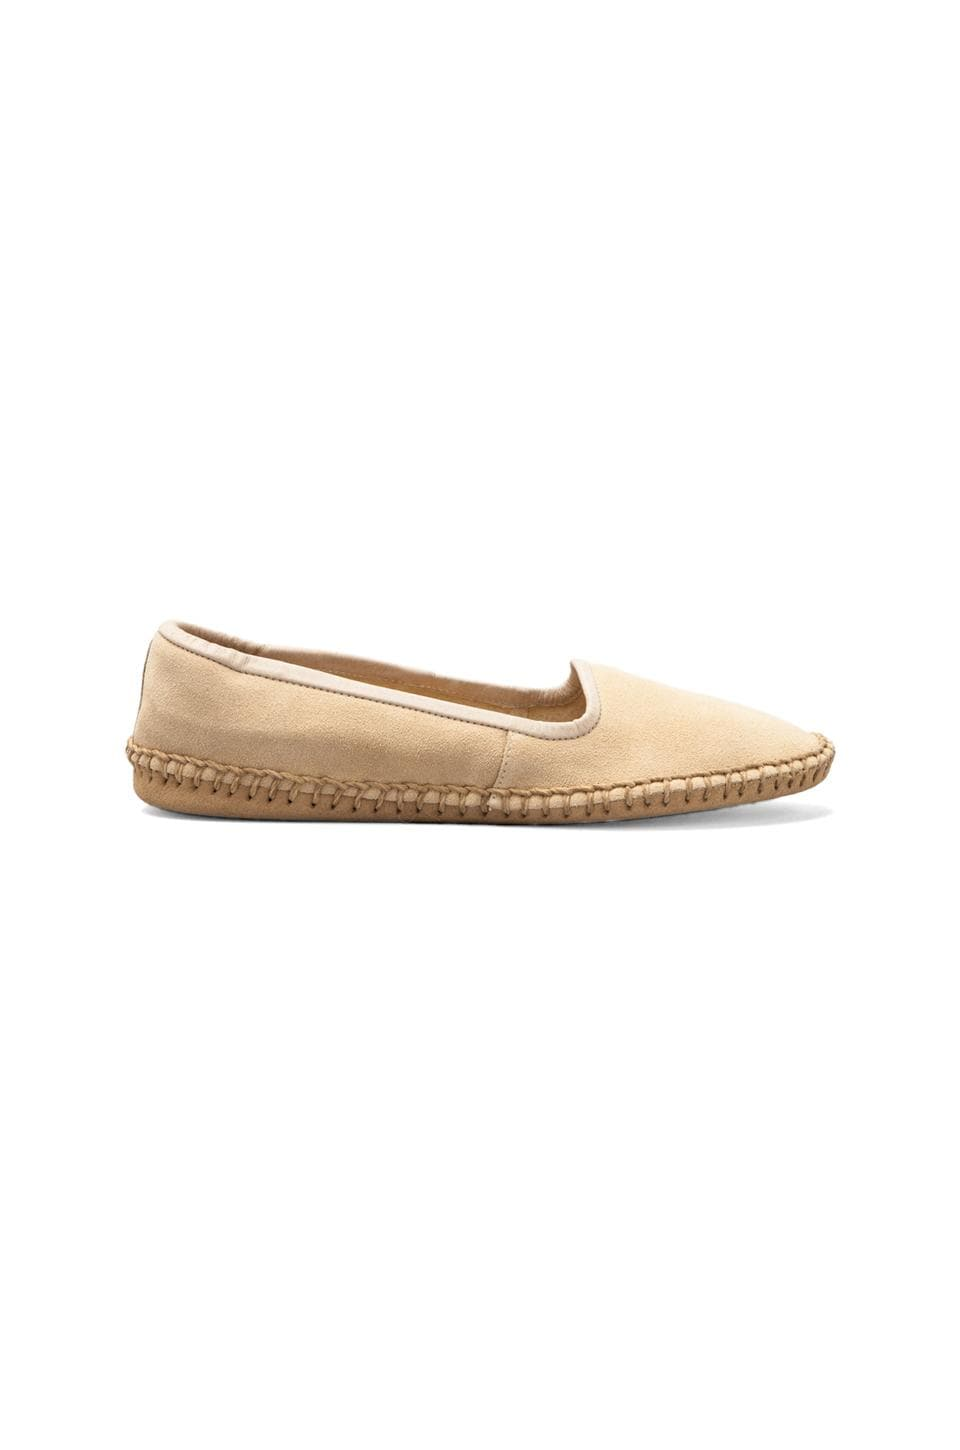 ANINE BING Suede Moccasin in Beige